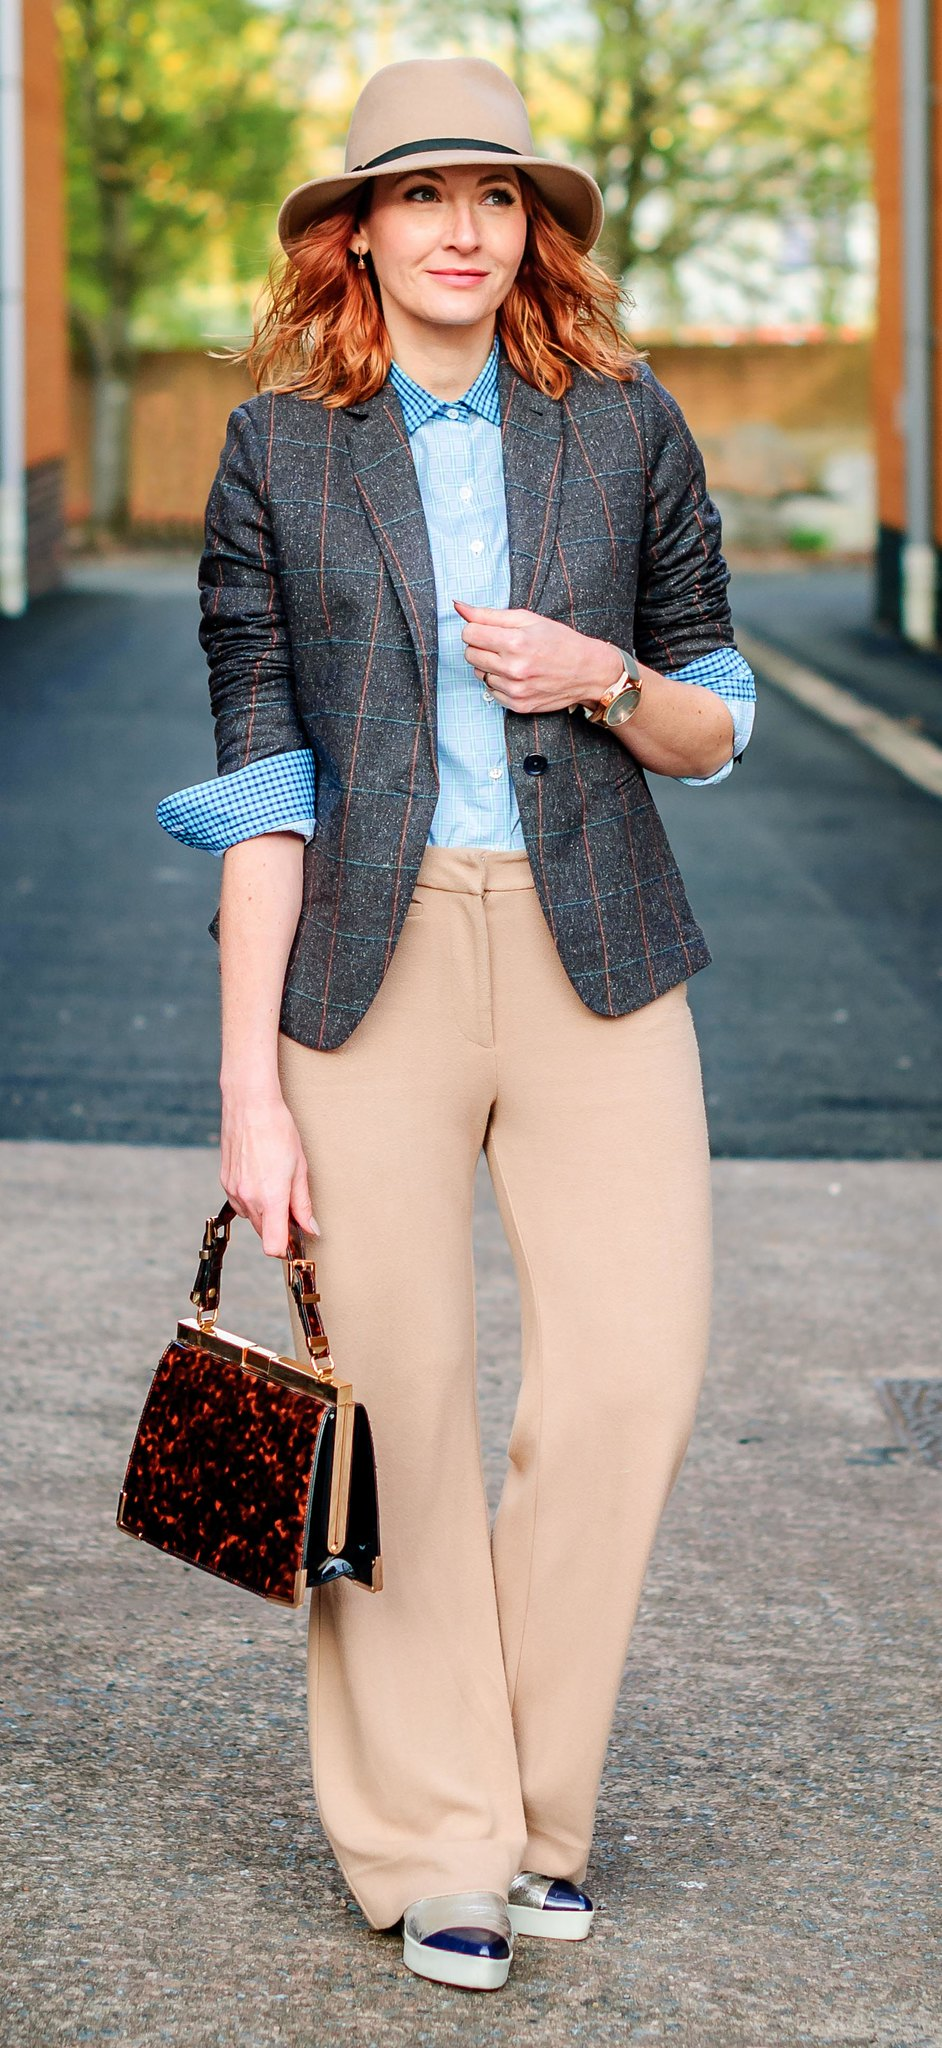 Smart British tailoring by Arthur Shirtley: Check shirt \ tweed silk blazer \ camel wide leg trousers \ silver slip on sneakers \ tortoiseshell bag \ camel fedora | Not Dressed As Lamb, over 40 style